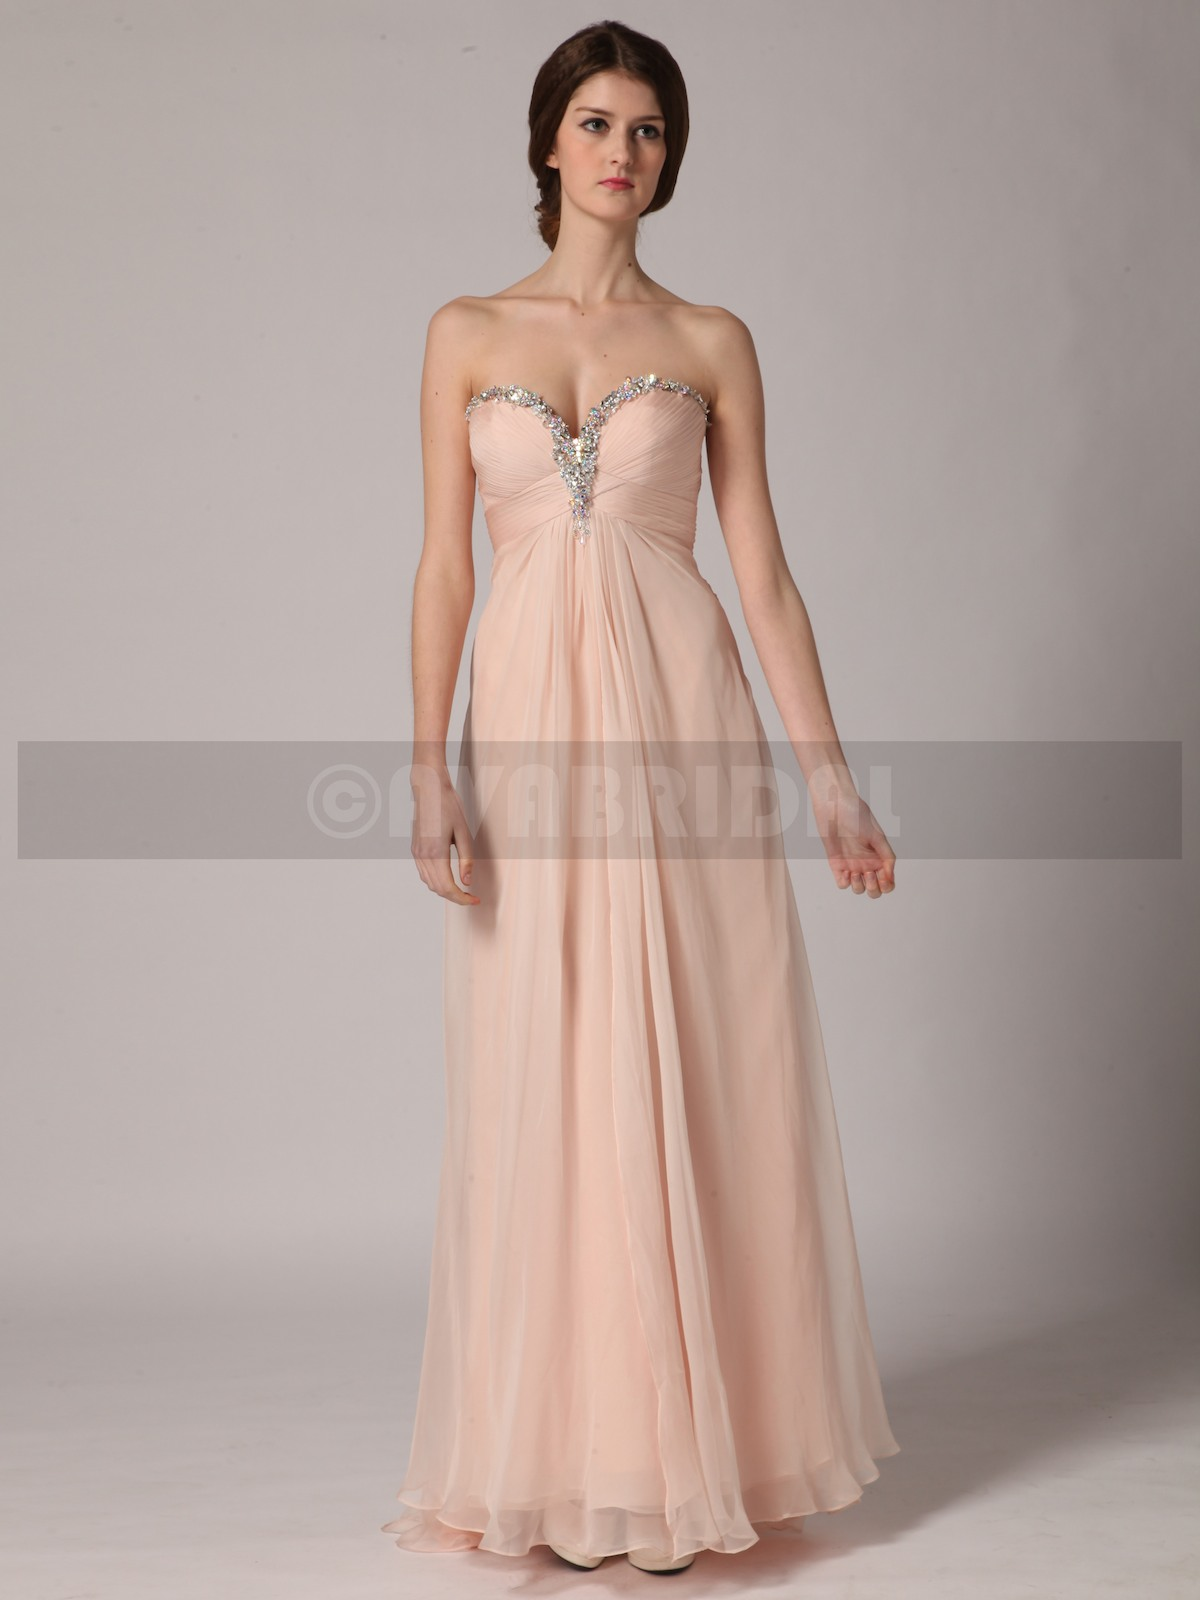 A-line Sweetheart Empire Waist Chiffon Bridesmaids Dress B429-Front